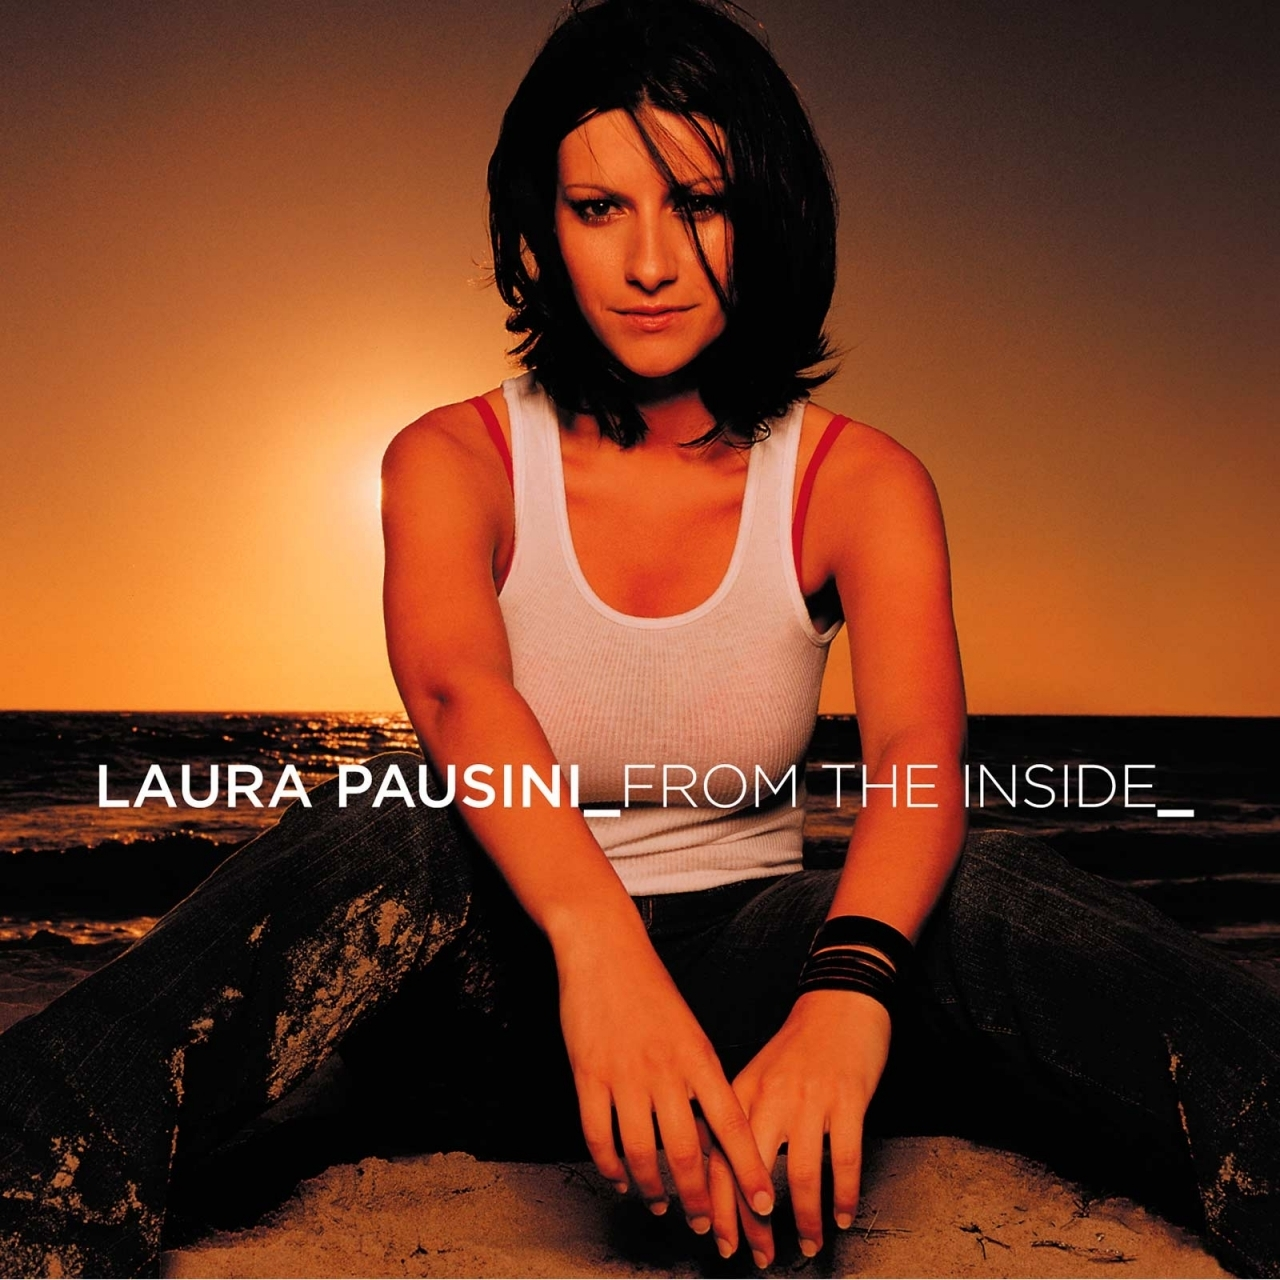 LAURA PAUSINI – FROM THE INSIDE